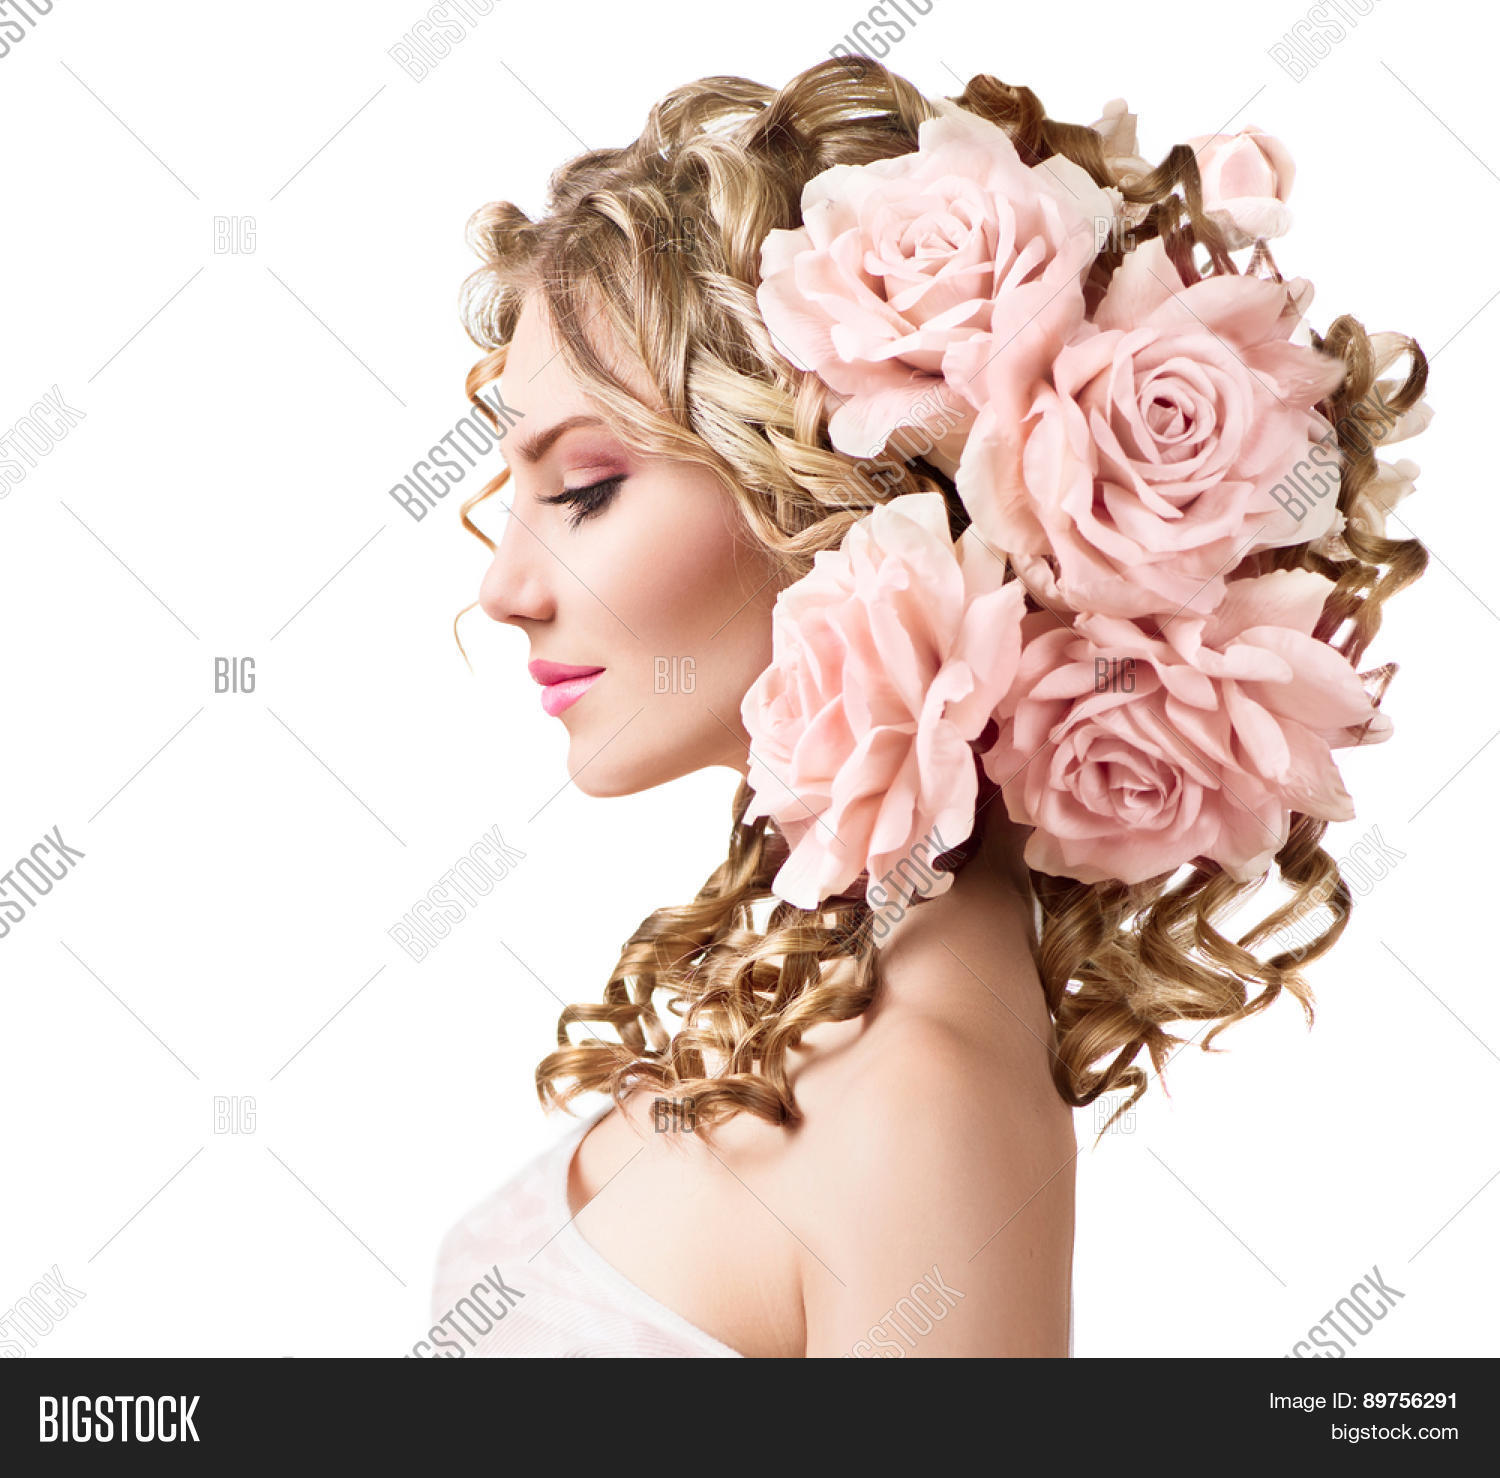 Beauty girl rose image photo free trial bigstock beauty girl with rose flowers hairstyle isolated on white background fantasy girl portrait with pink izmirmasajfo